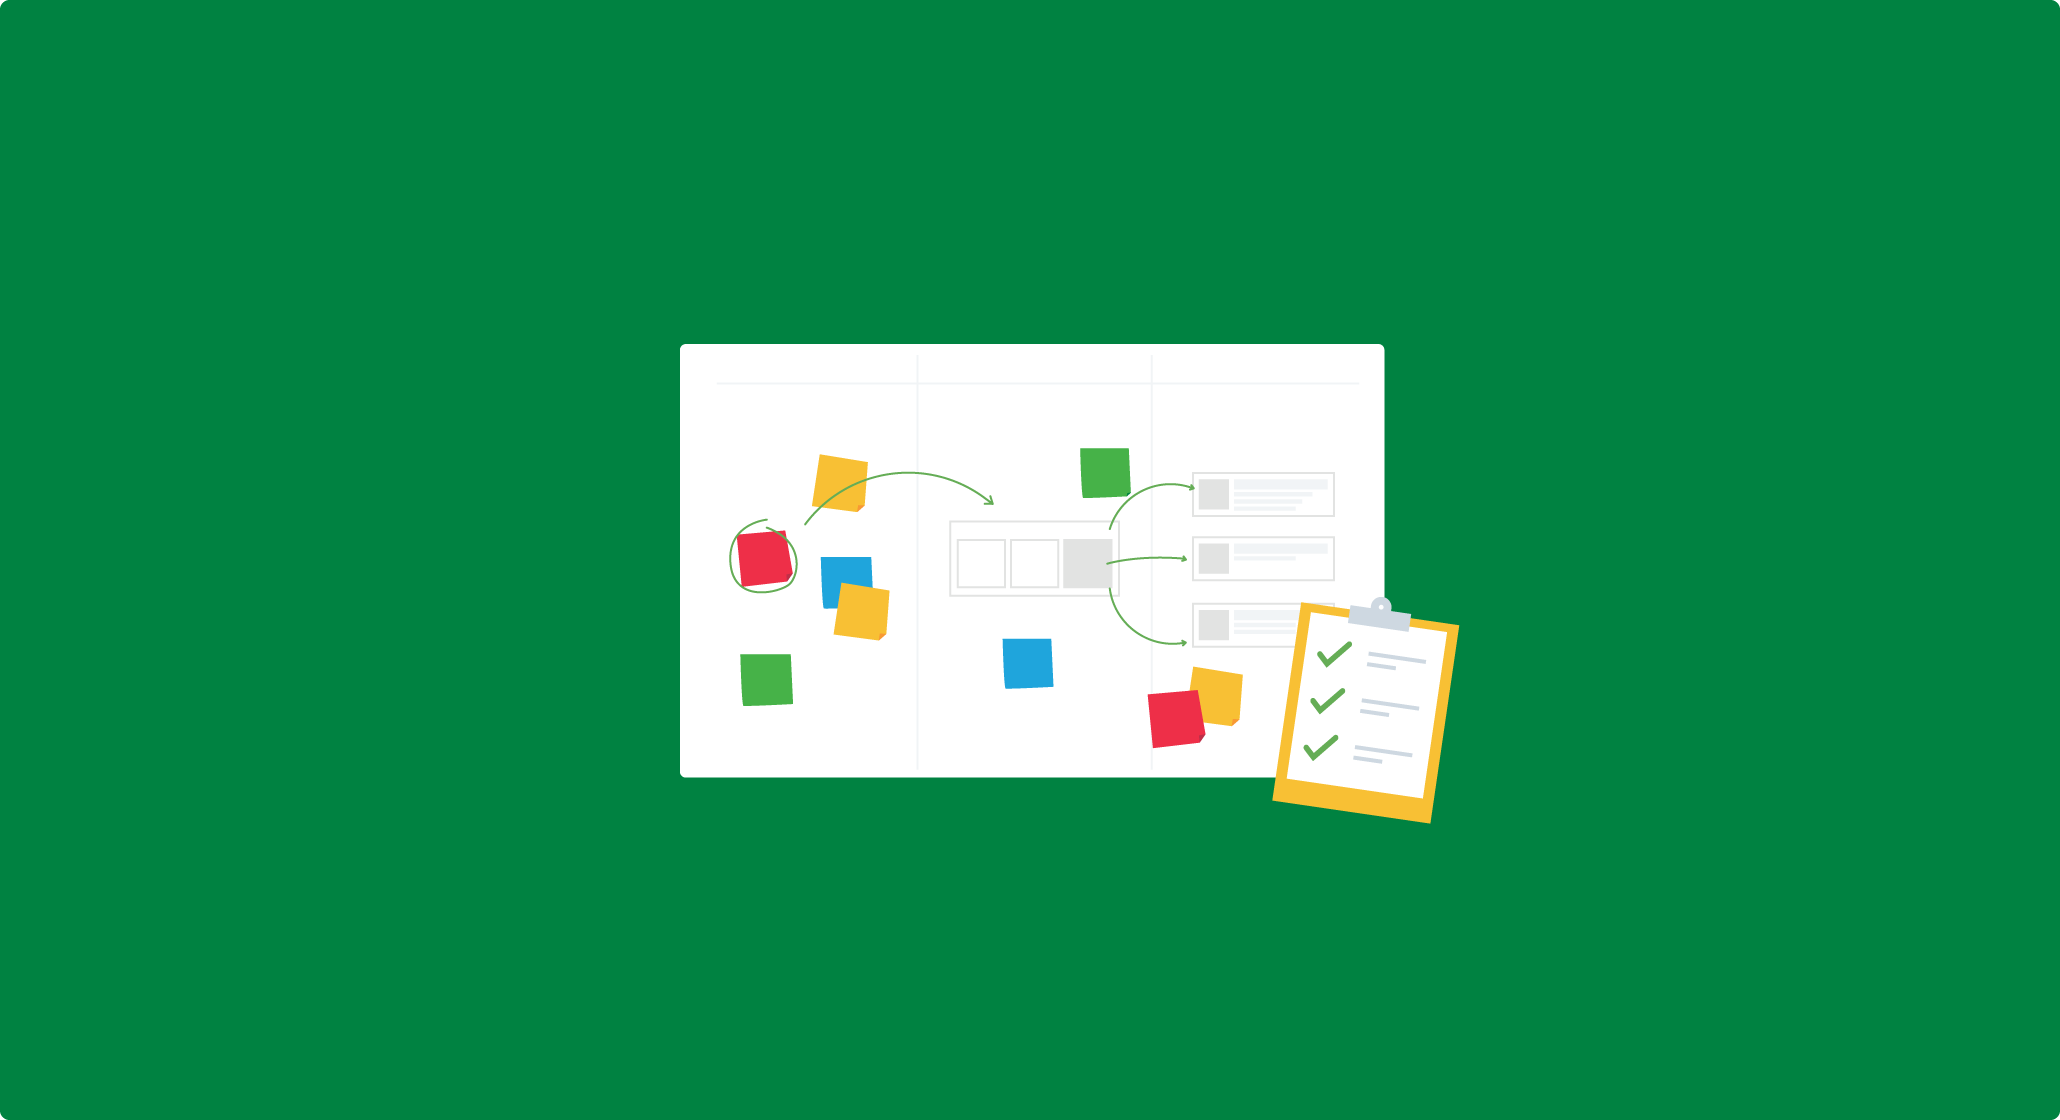 Project planning with a whiteboard and checklist